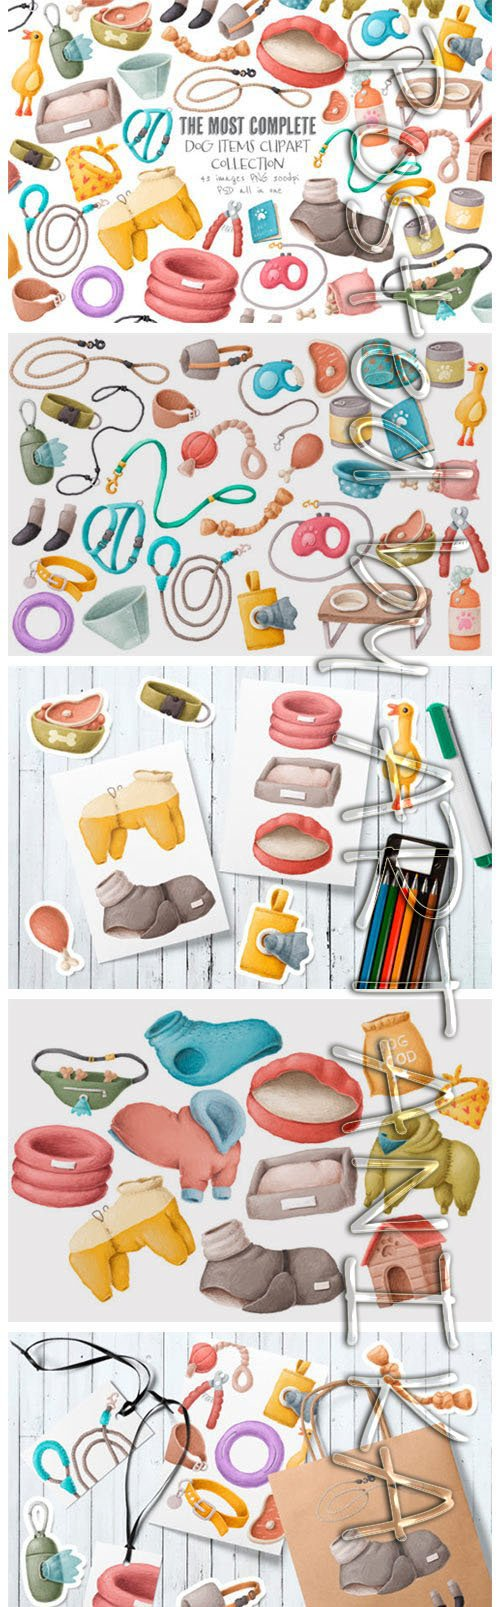 Dog Items Clipart Collection 2151116